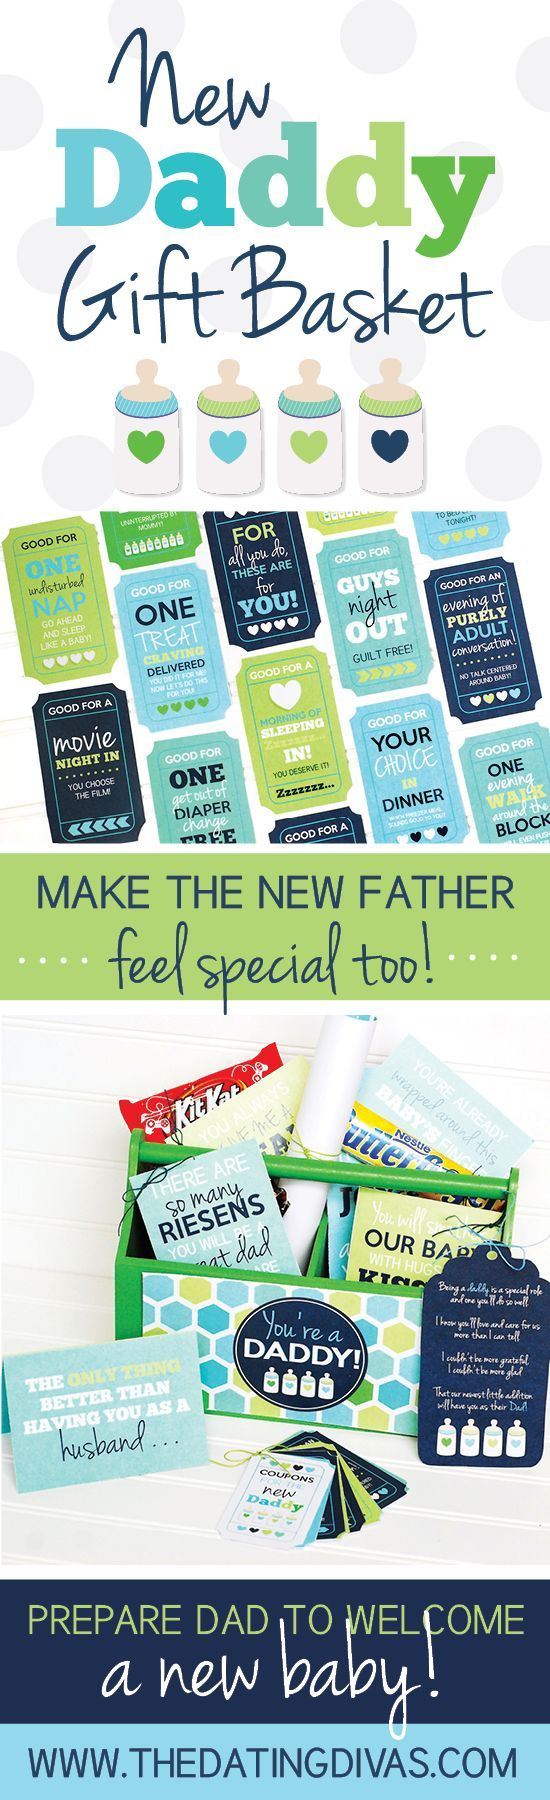 Make a new father feel special and supported with this New Daddy Gift Basket! Printables designed by www.paperelli.com www.TheDatingDivas.com